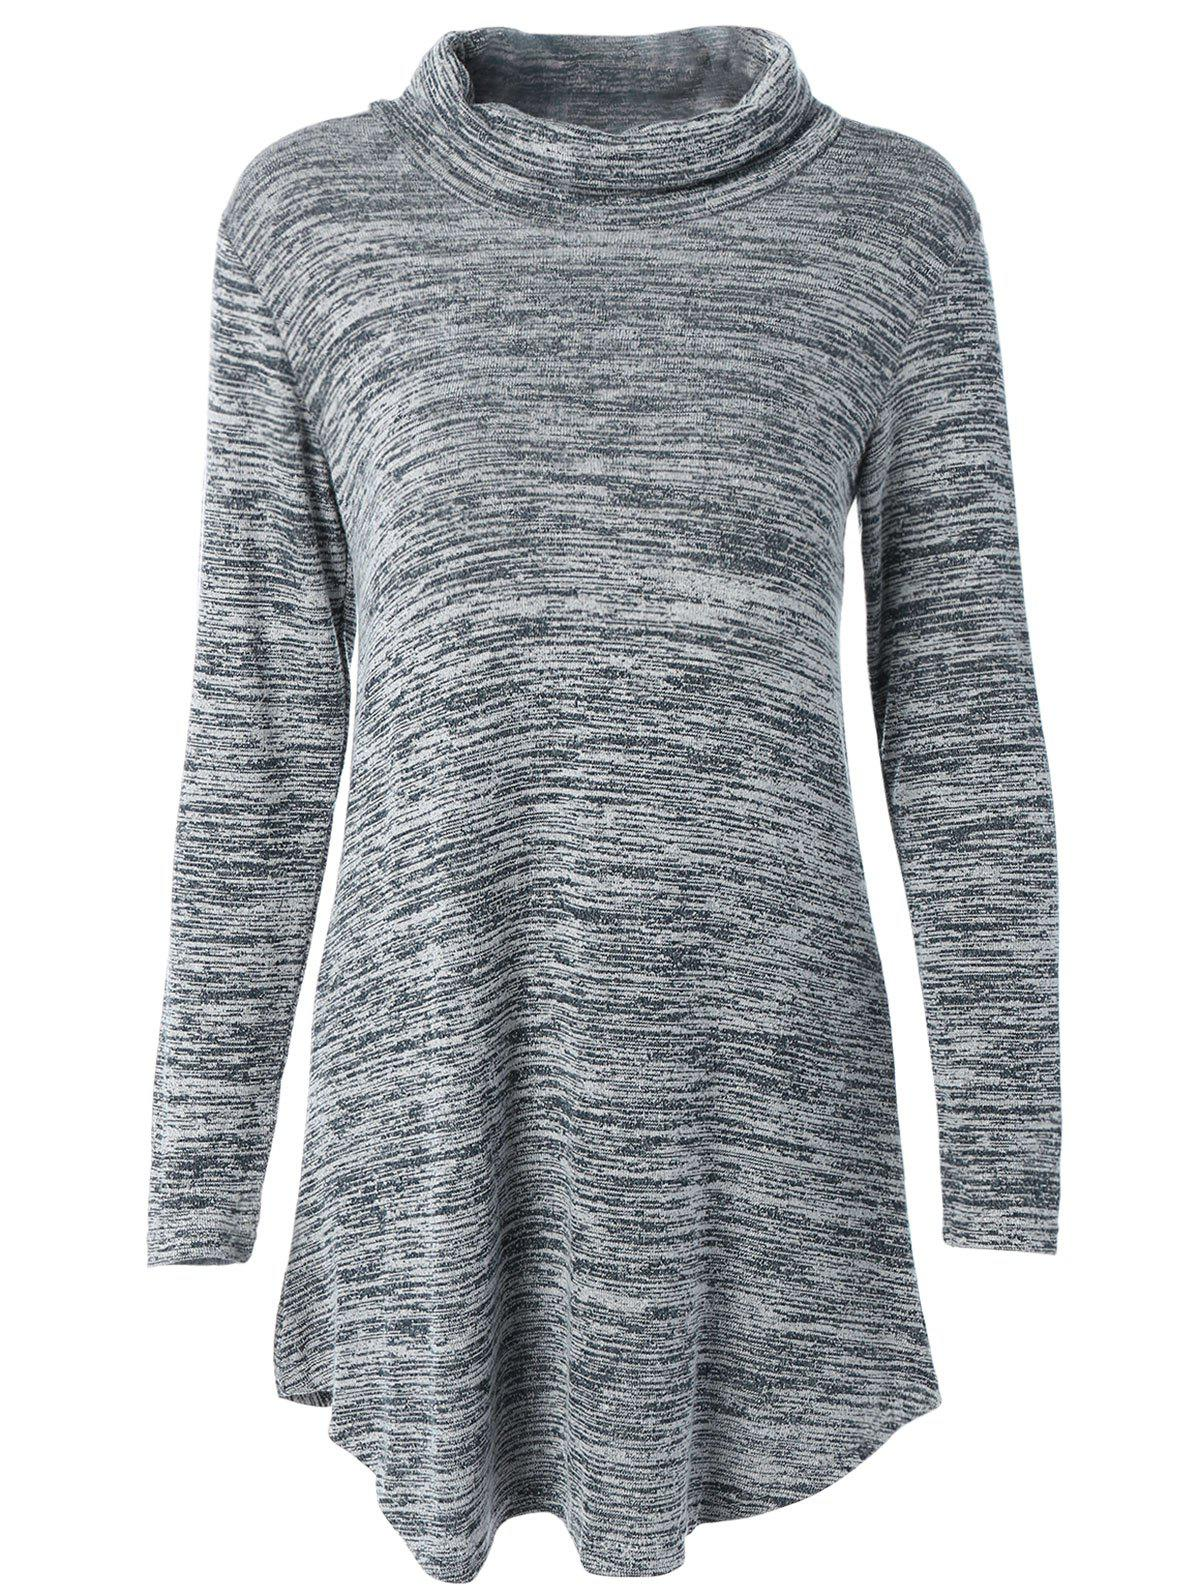 Turtleneck Asymmetric Knitted Tunic Dress - GRAY M